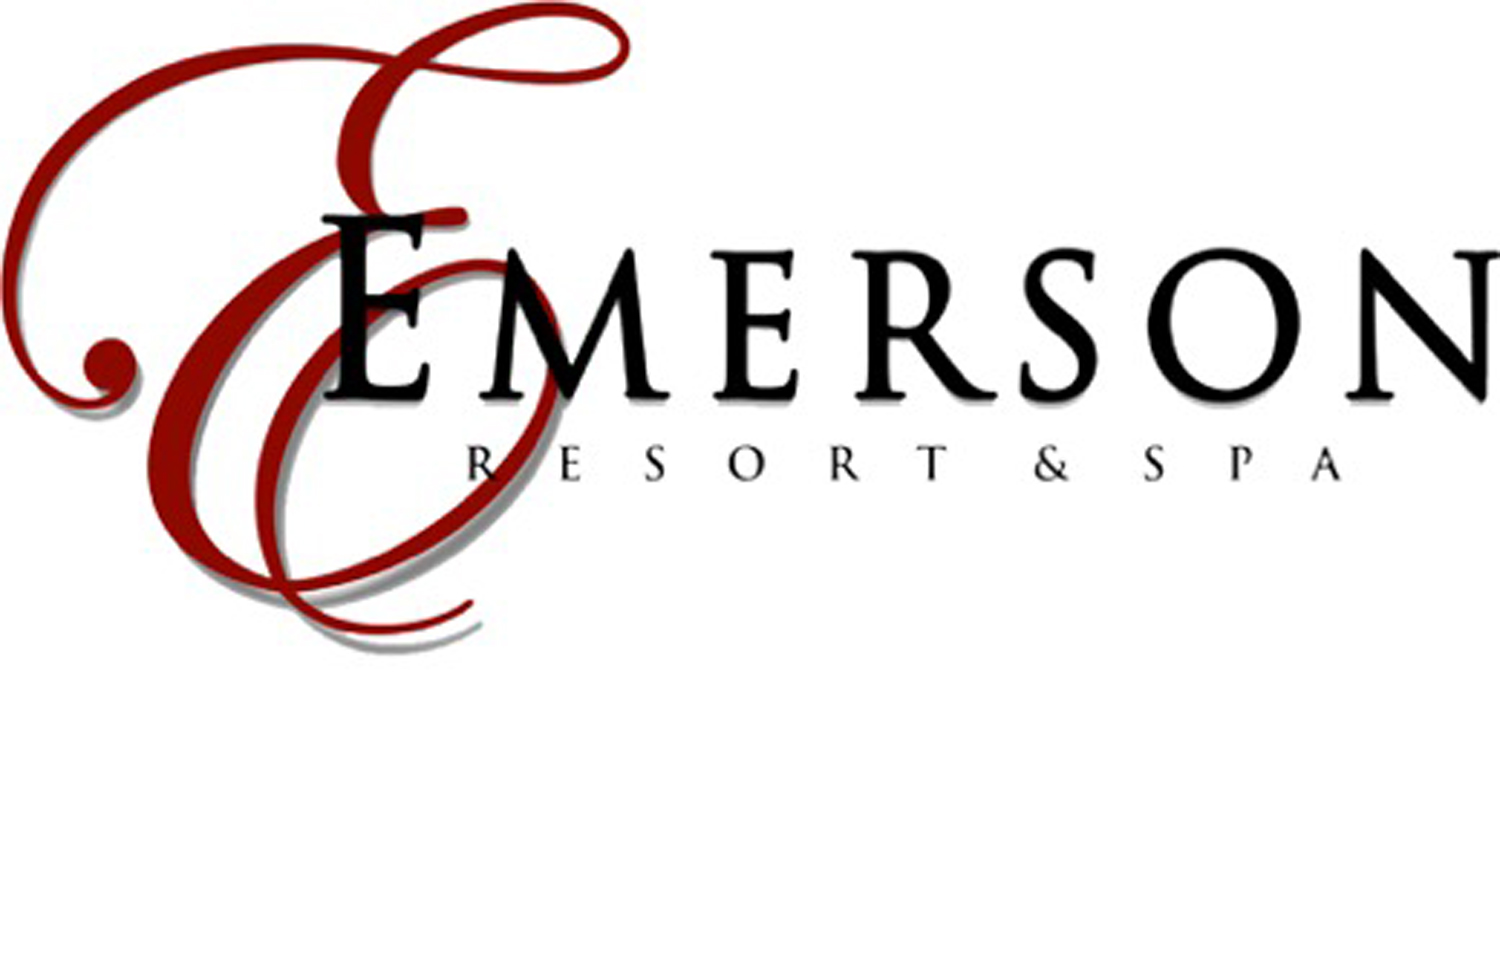 Emerson+Logo+Clear+Background+copy+300dpi.jpg